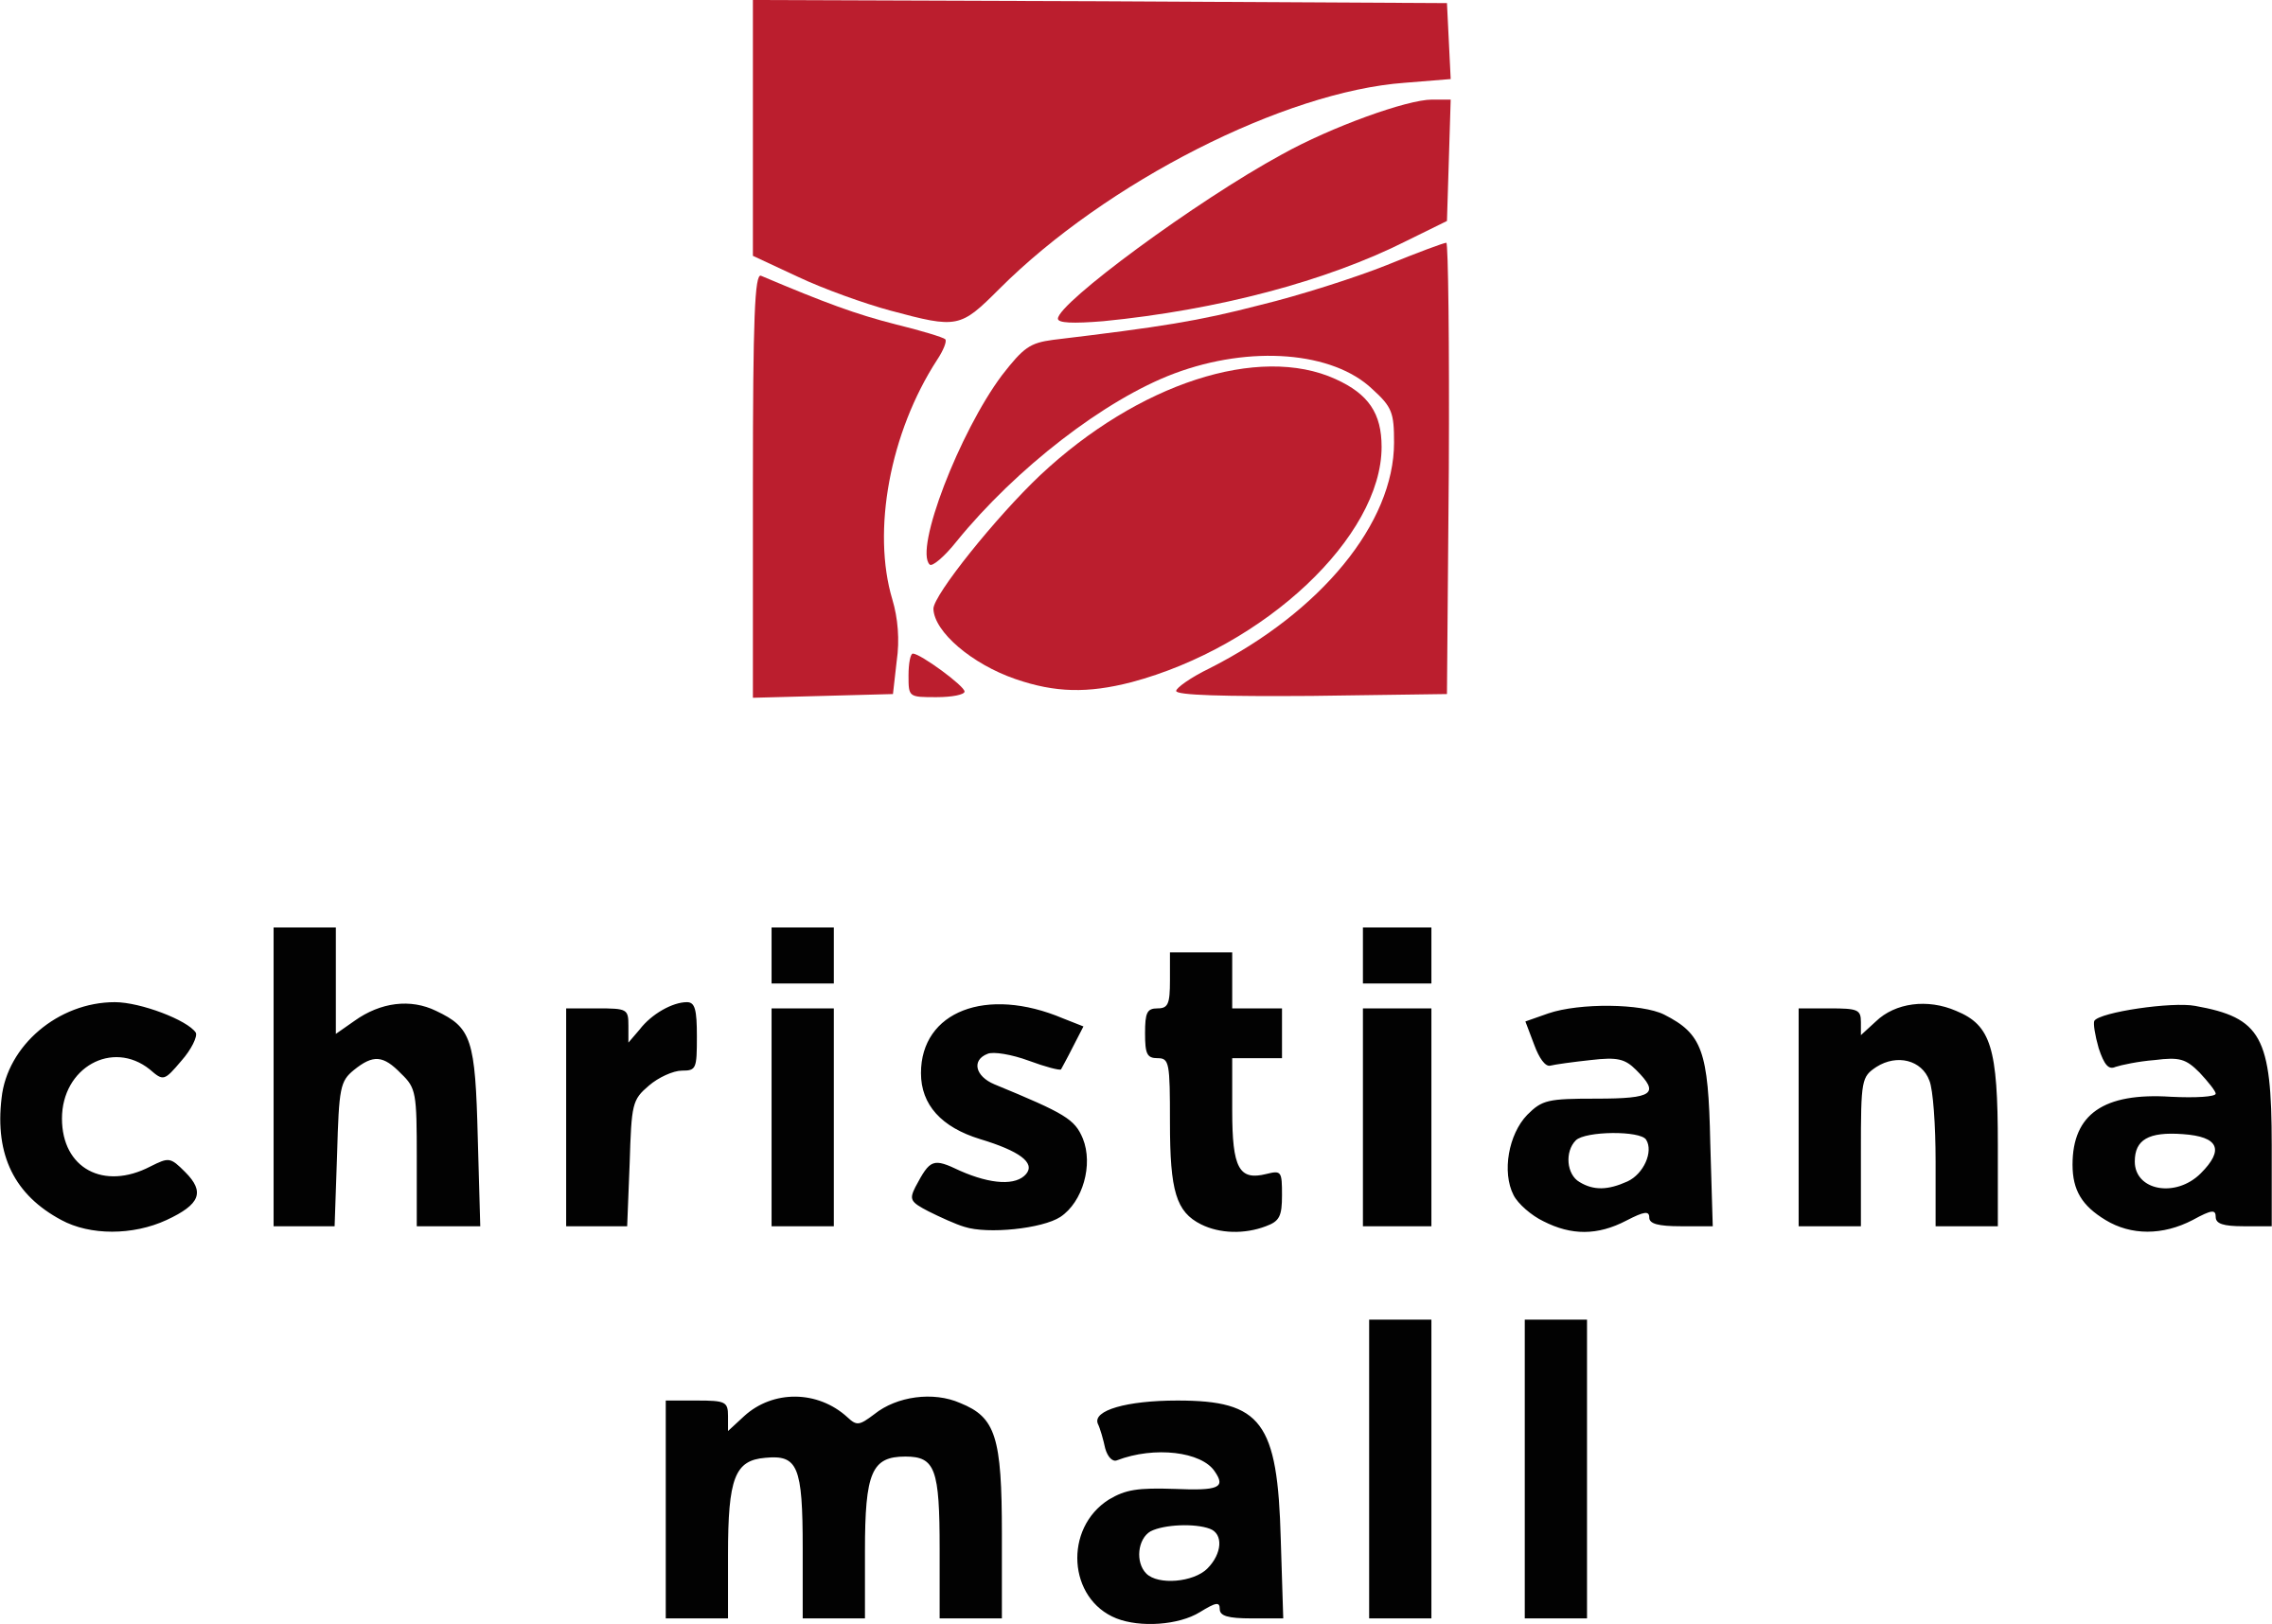 christiana-mall-s-1-logo-png-transparent.png